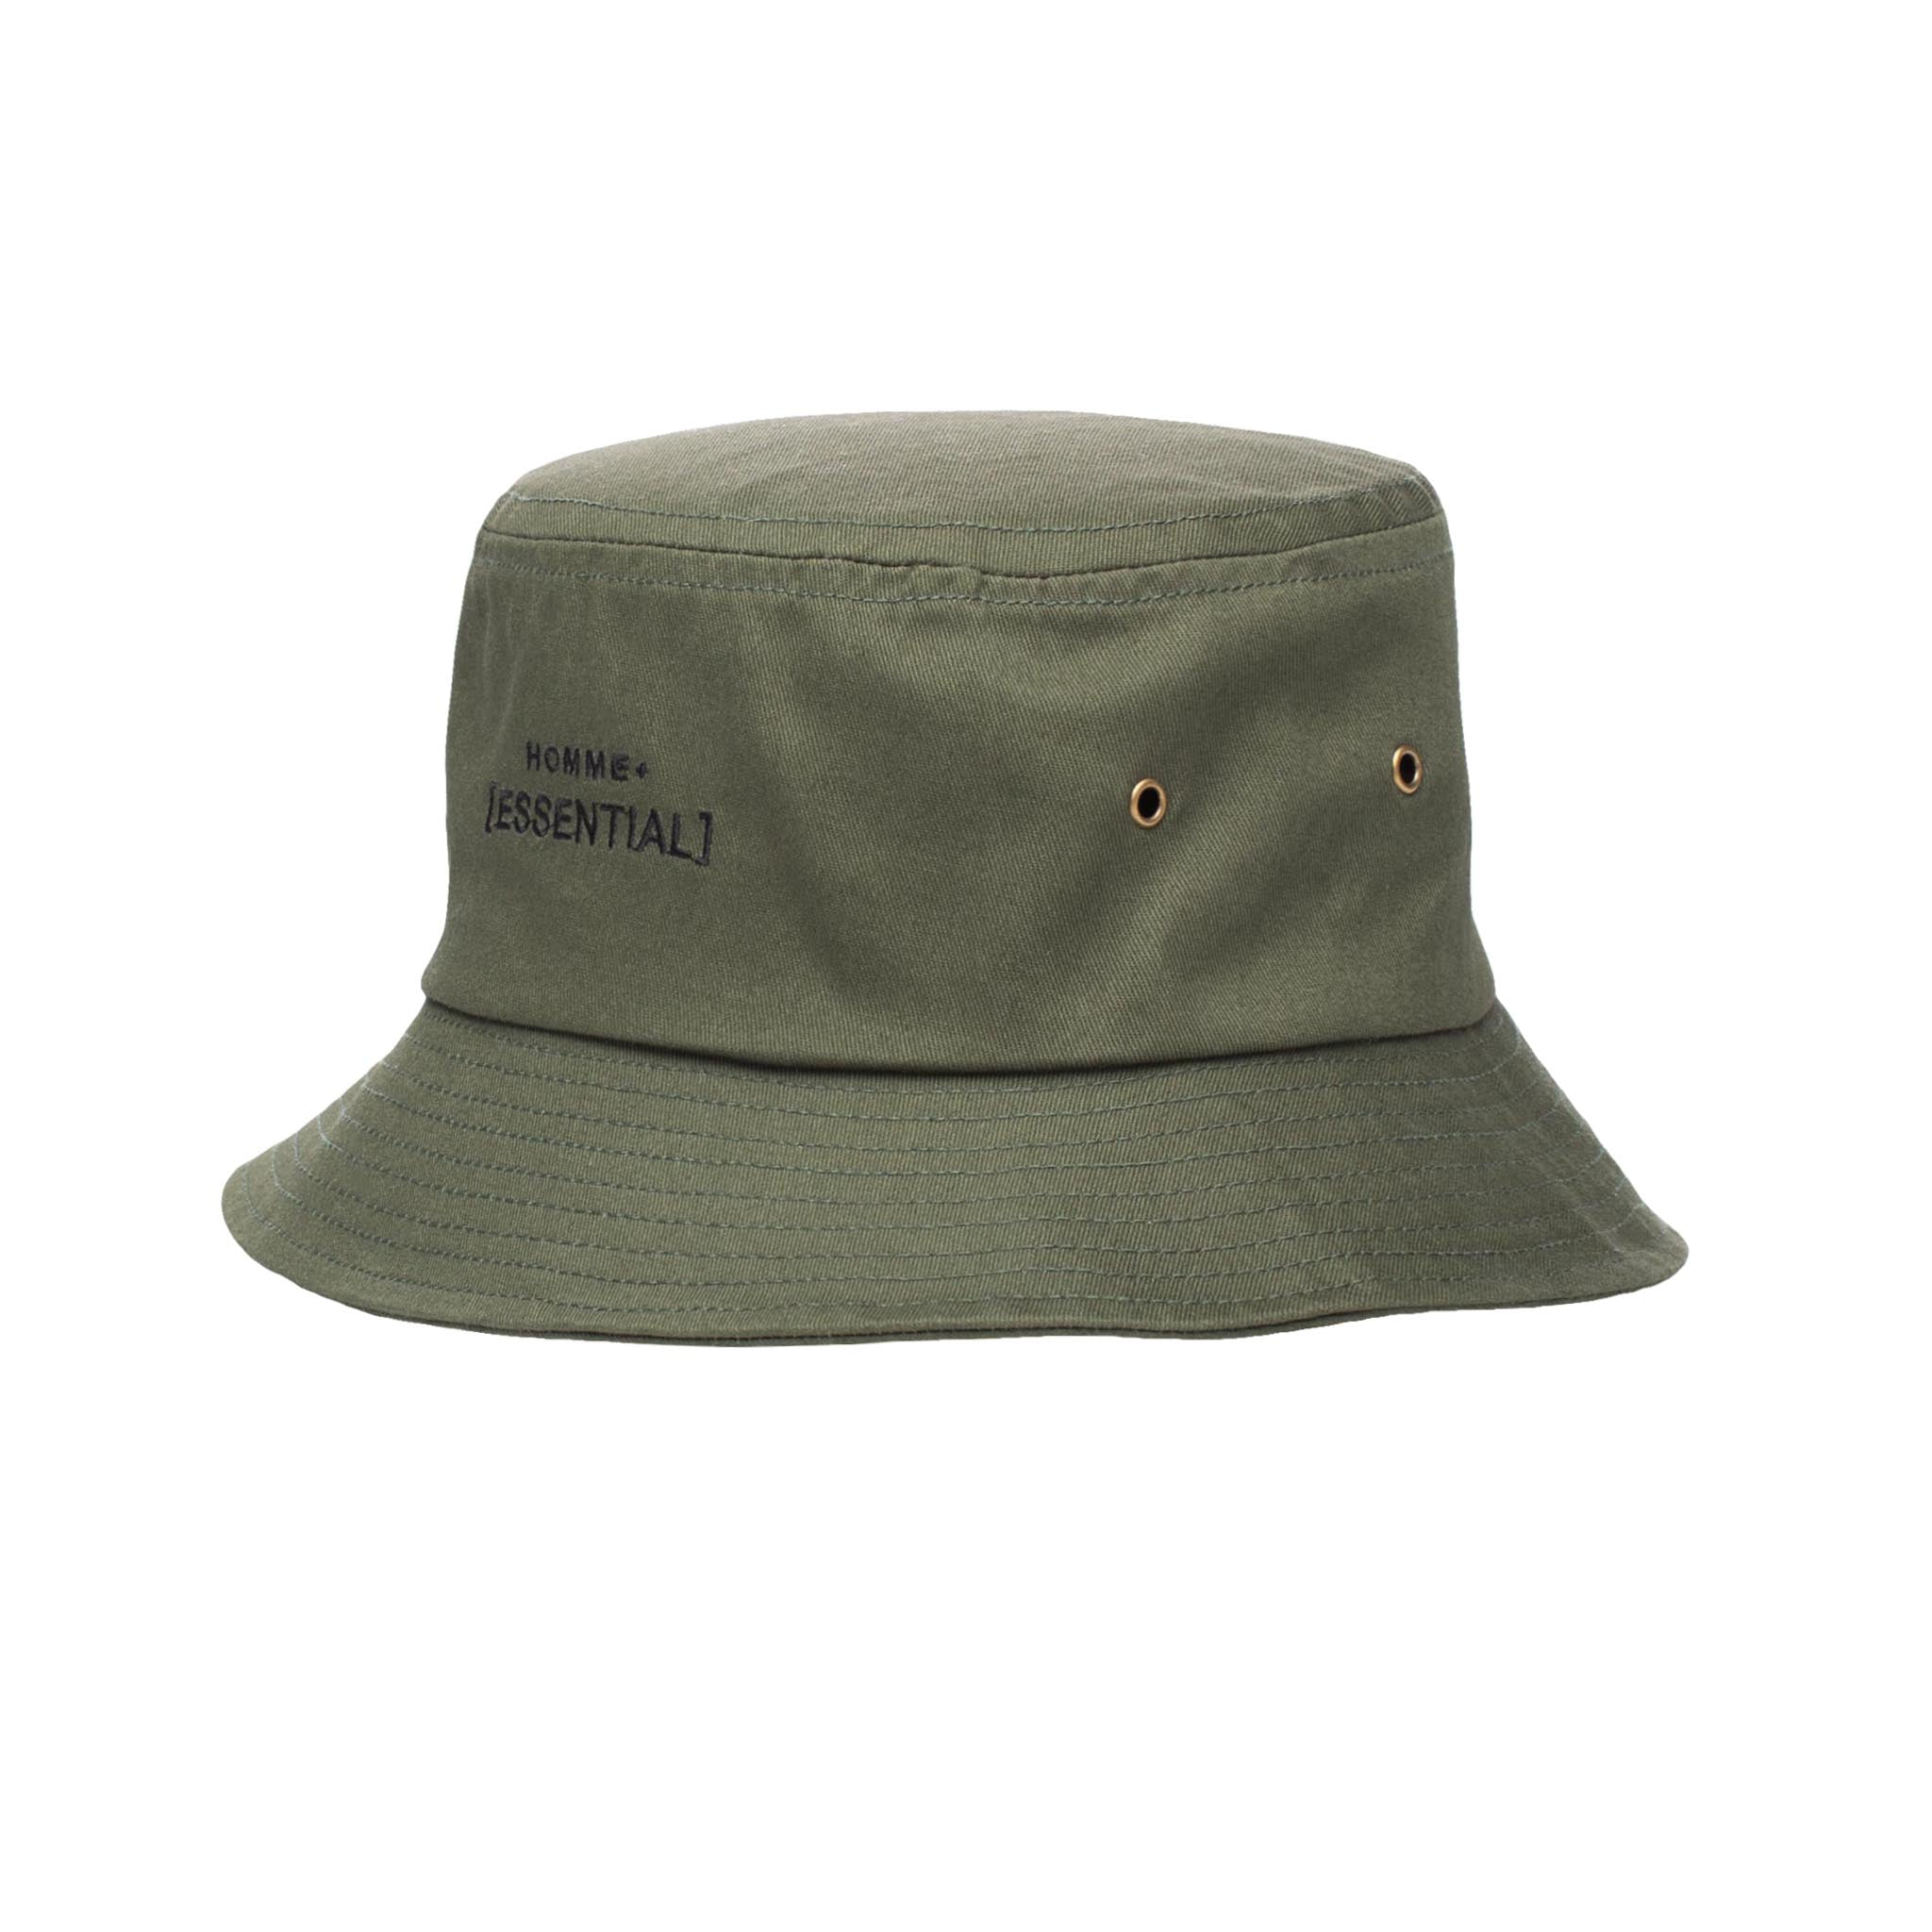 HOMME+ ESSENTIAL Bucket Hat Army